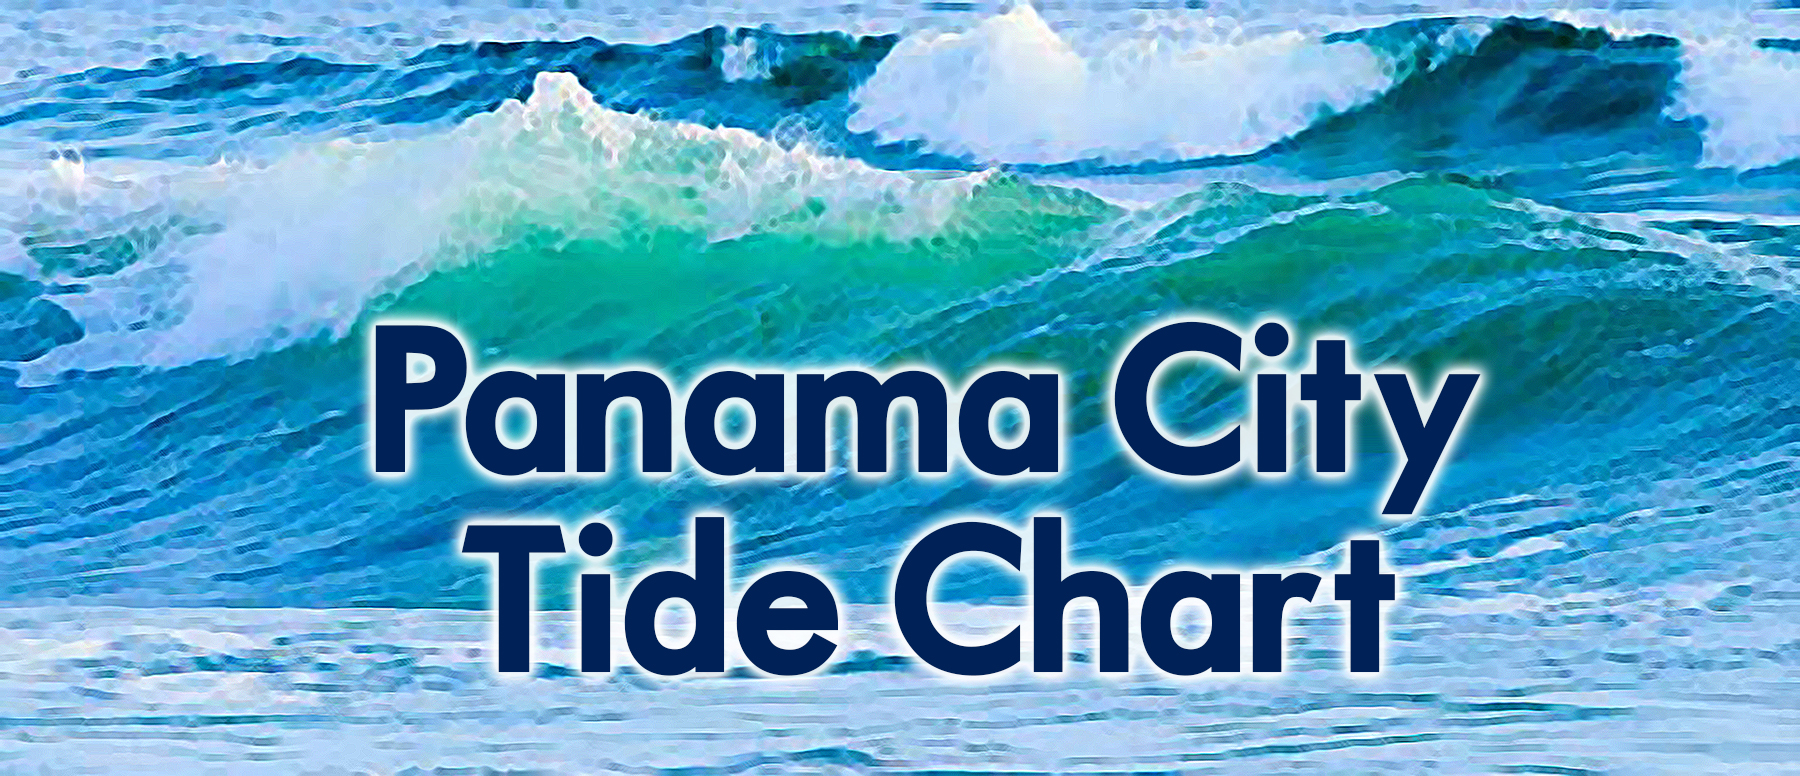 Texas tide chart images free any chart examples gulf of mexico tide chart image collections free any chart examples panama city tide chart image nvjuhfo Image collections